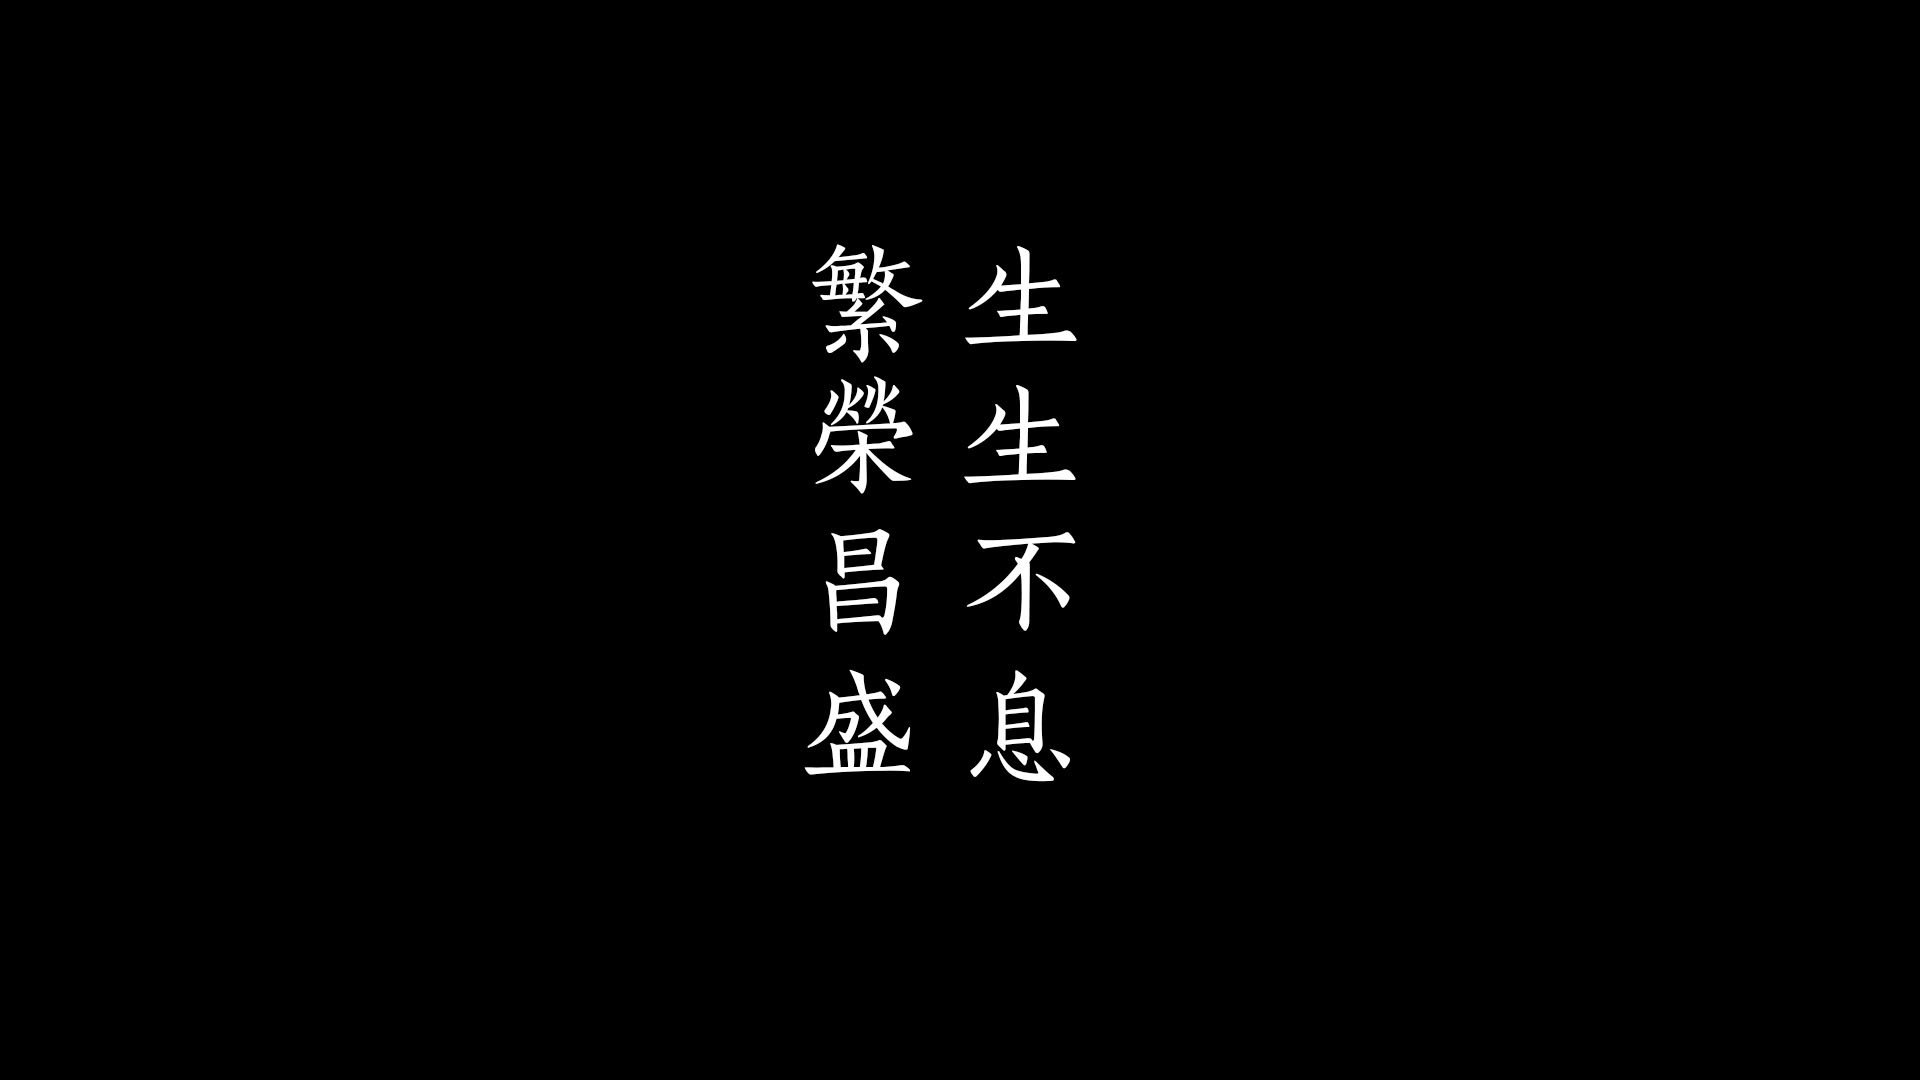 Chinese Calligraphy Wallpaper Hd Chinese Star Trek Live Long And Prosper Hd Wallpapers